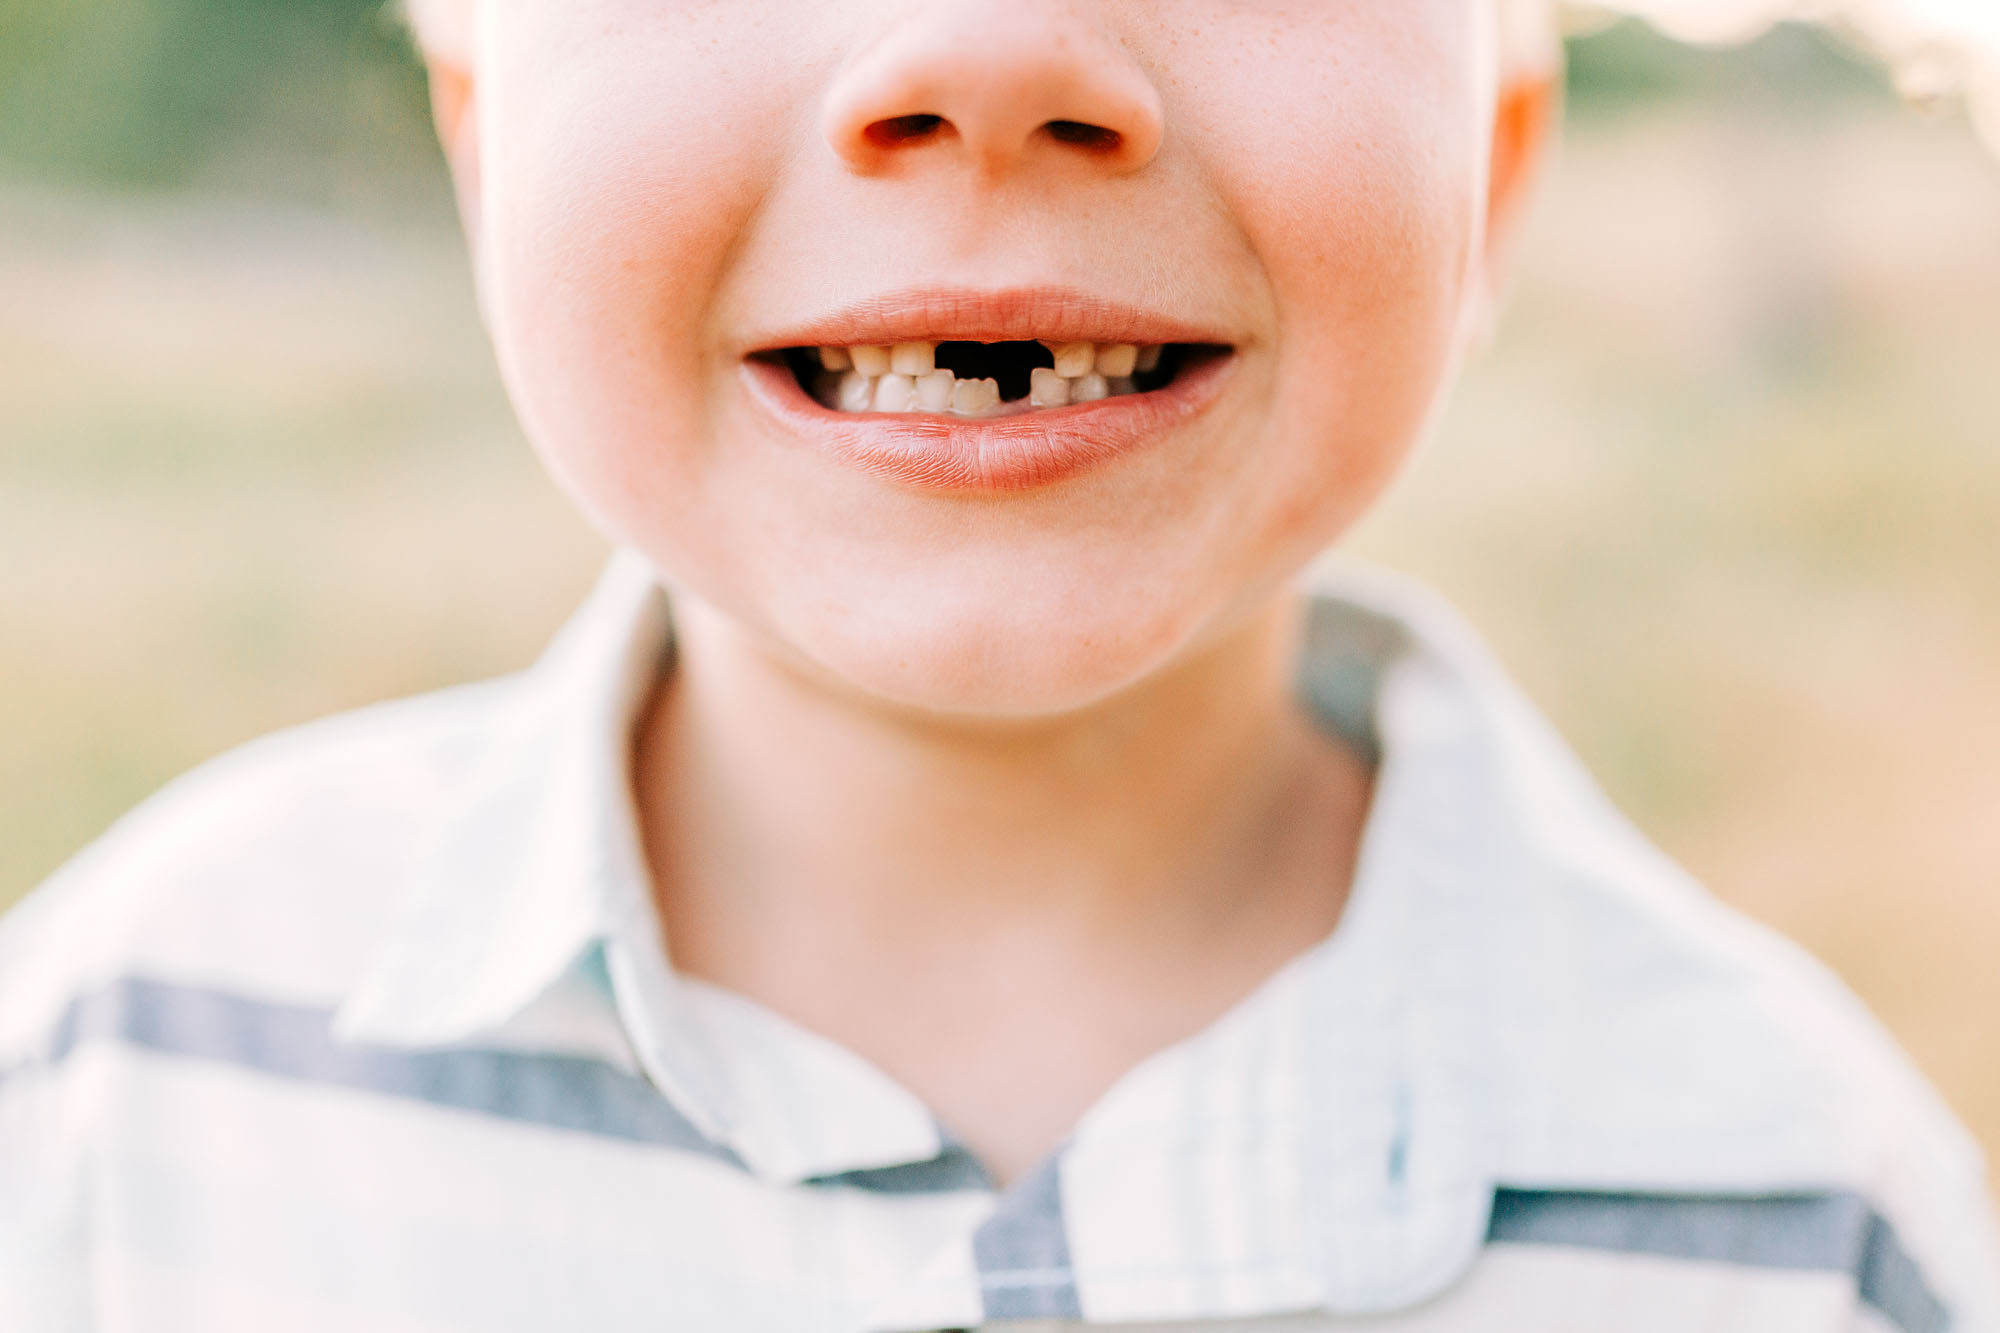 A detailed portrait shot is taken of a child during a family photo session with lifestyle photographer Amy Wright in Roseville, California.